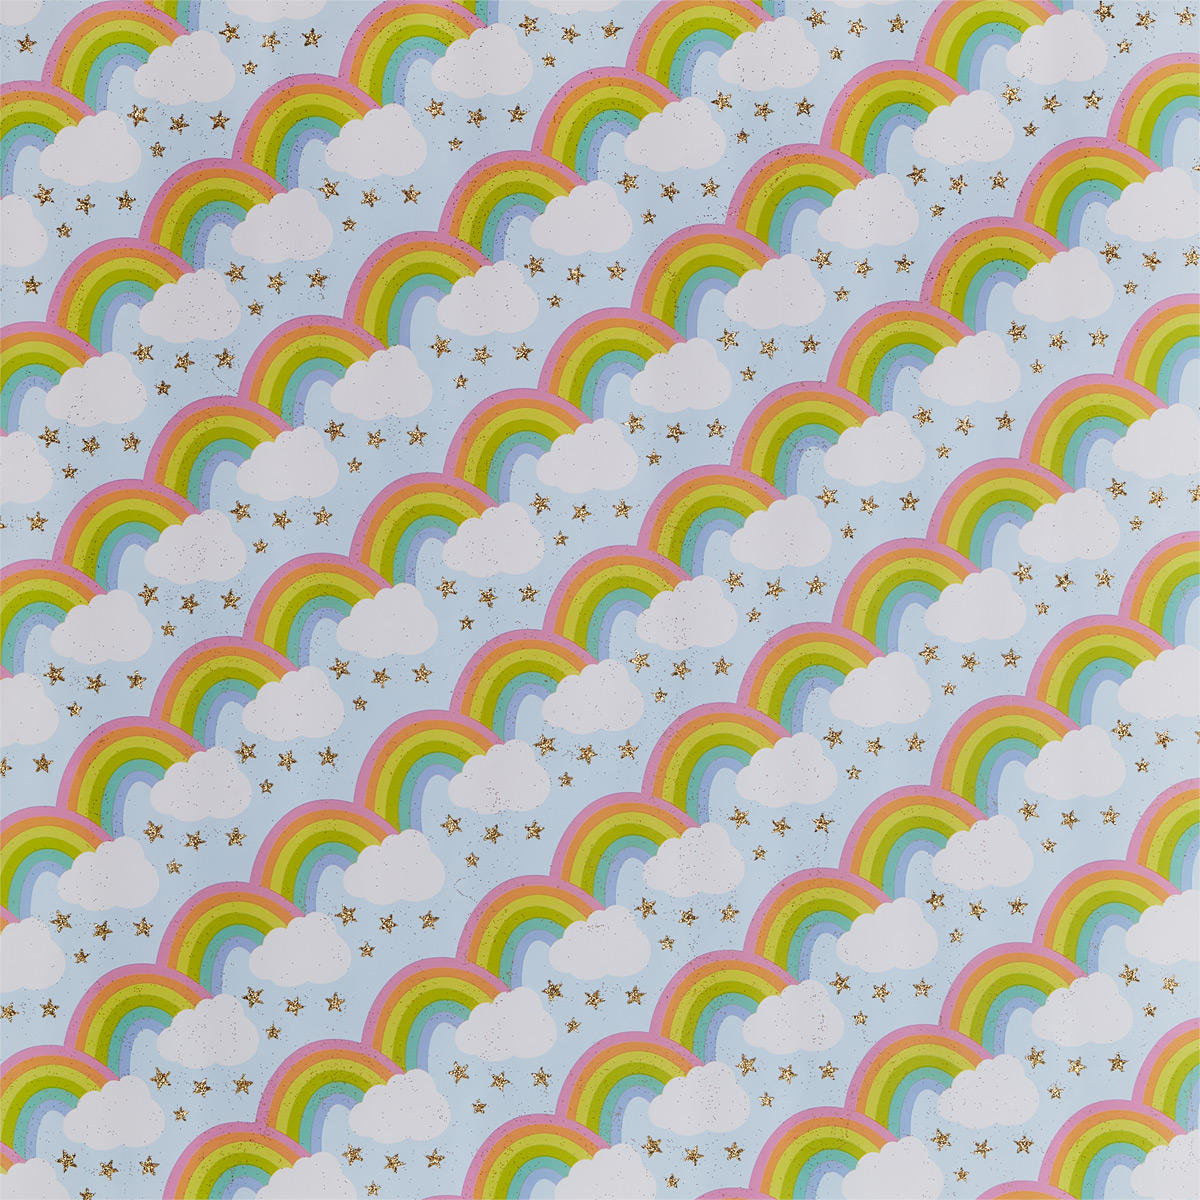 Rainbow & Stars Wrapping Paper